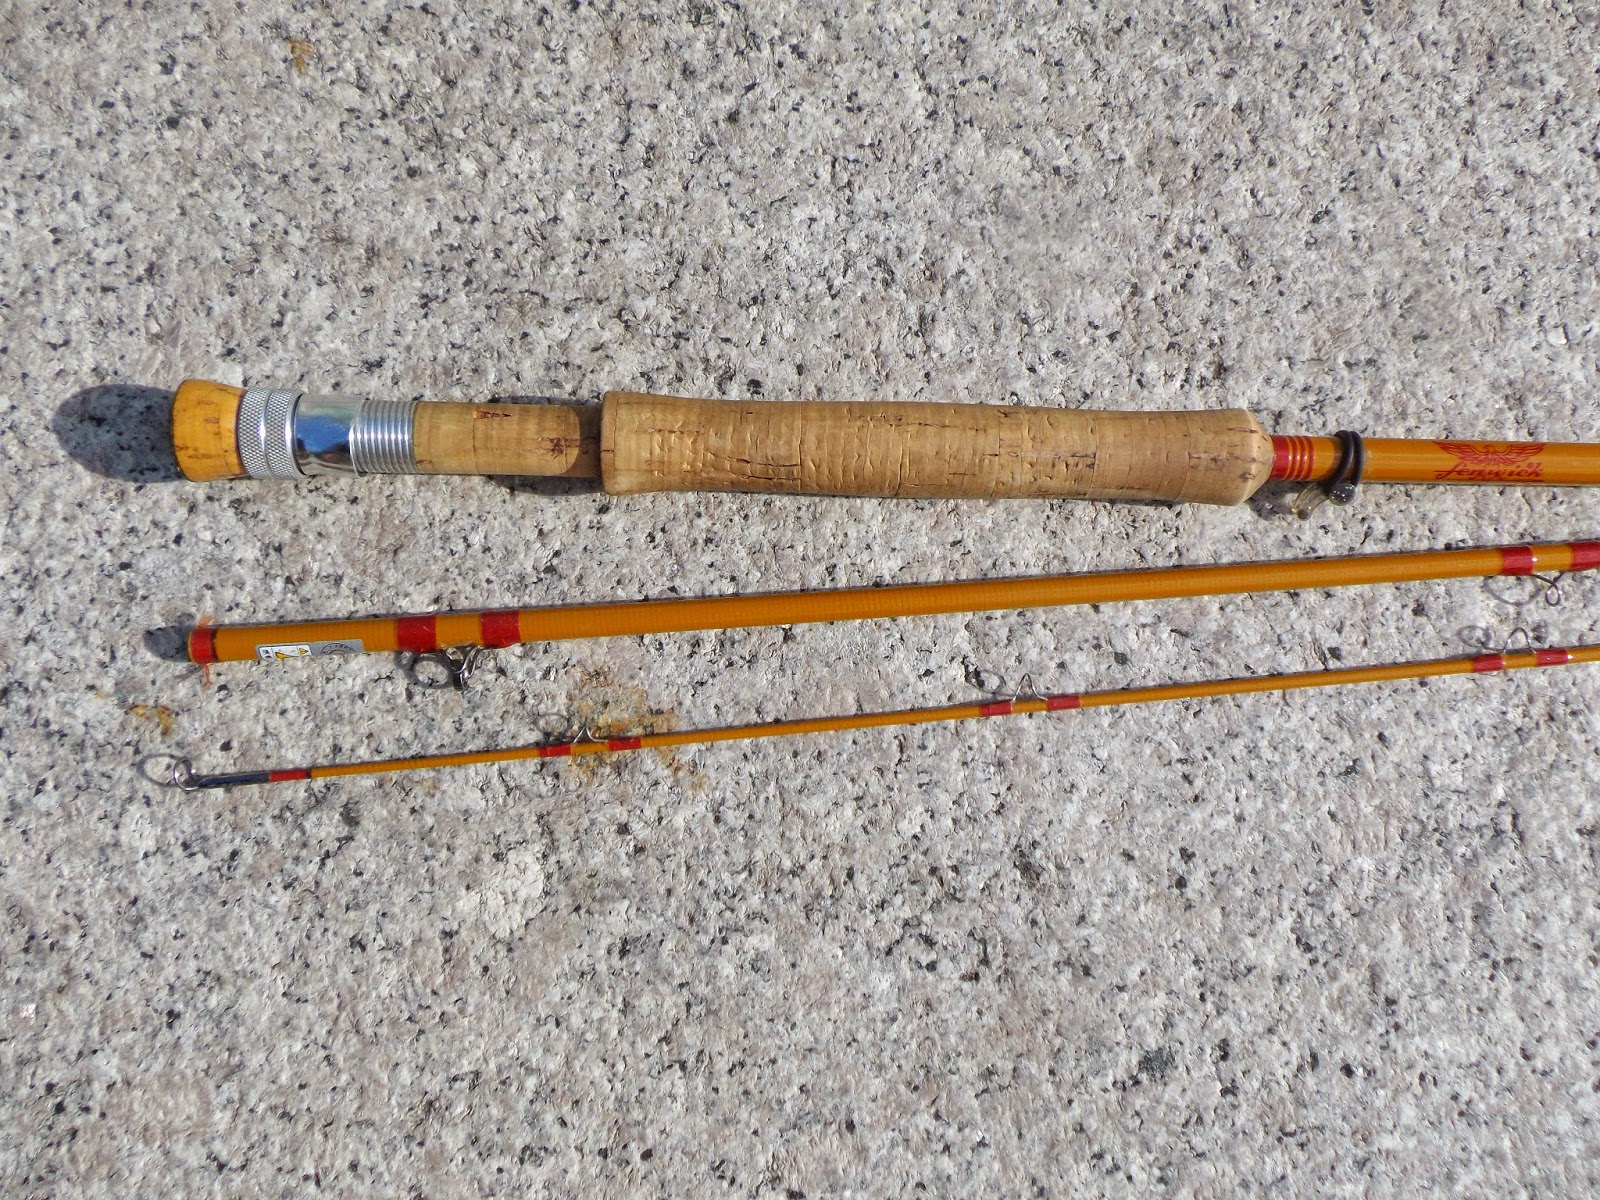 Fiberglass fly rods the great lakes of nyc for Fiberglass fishing rods